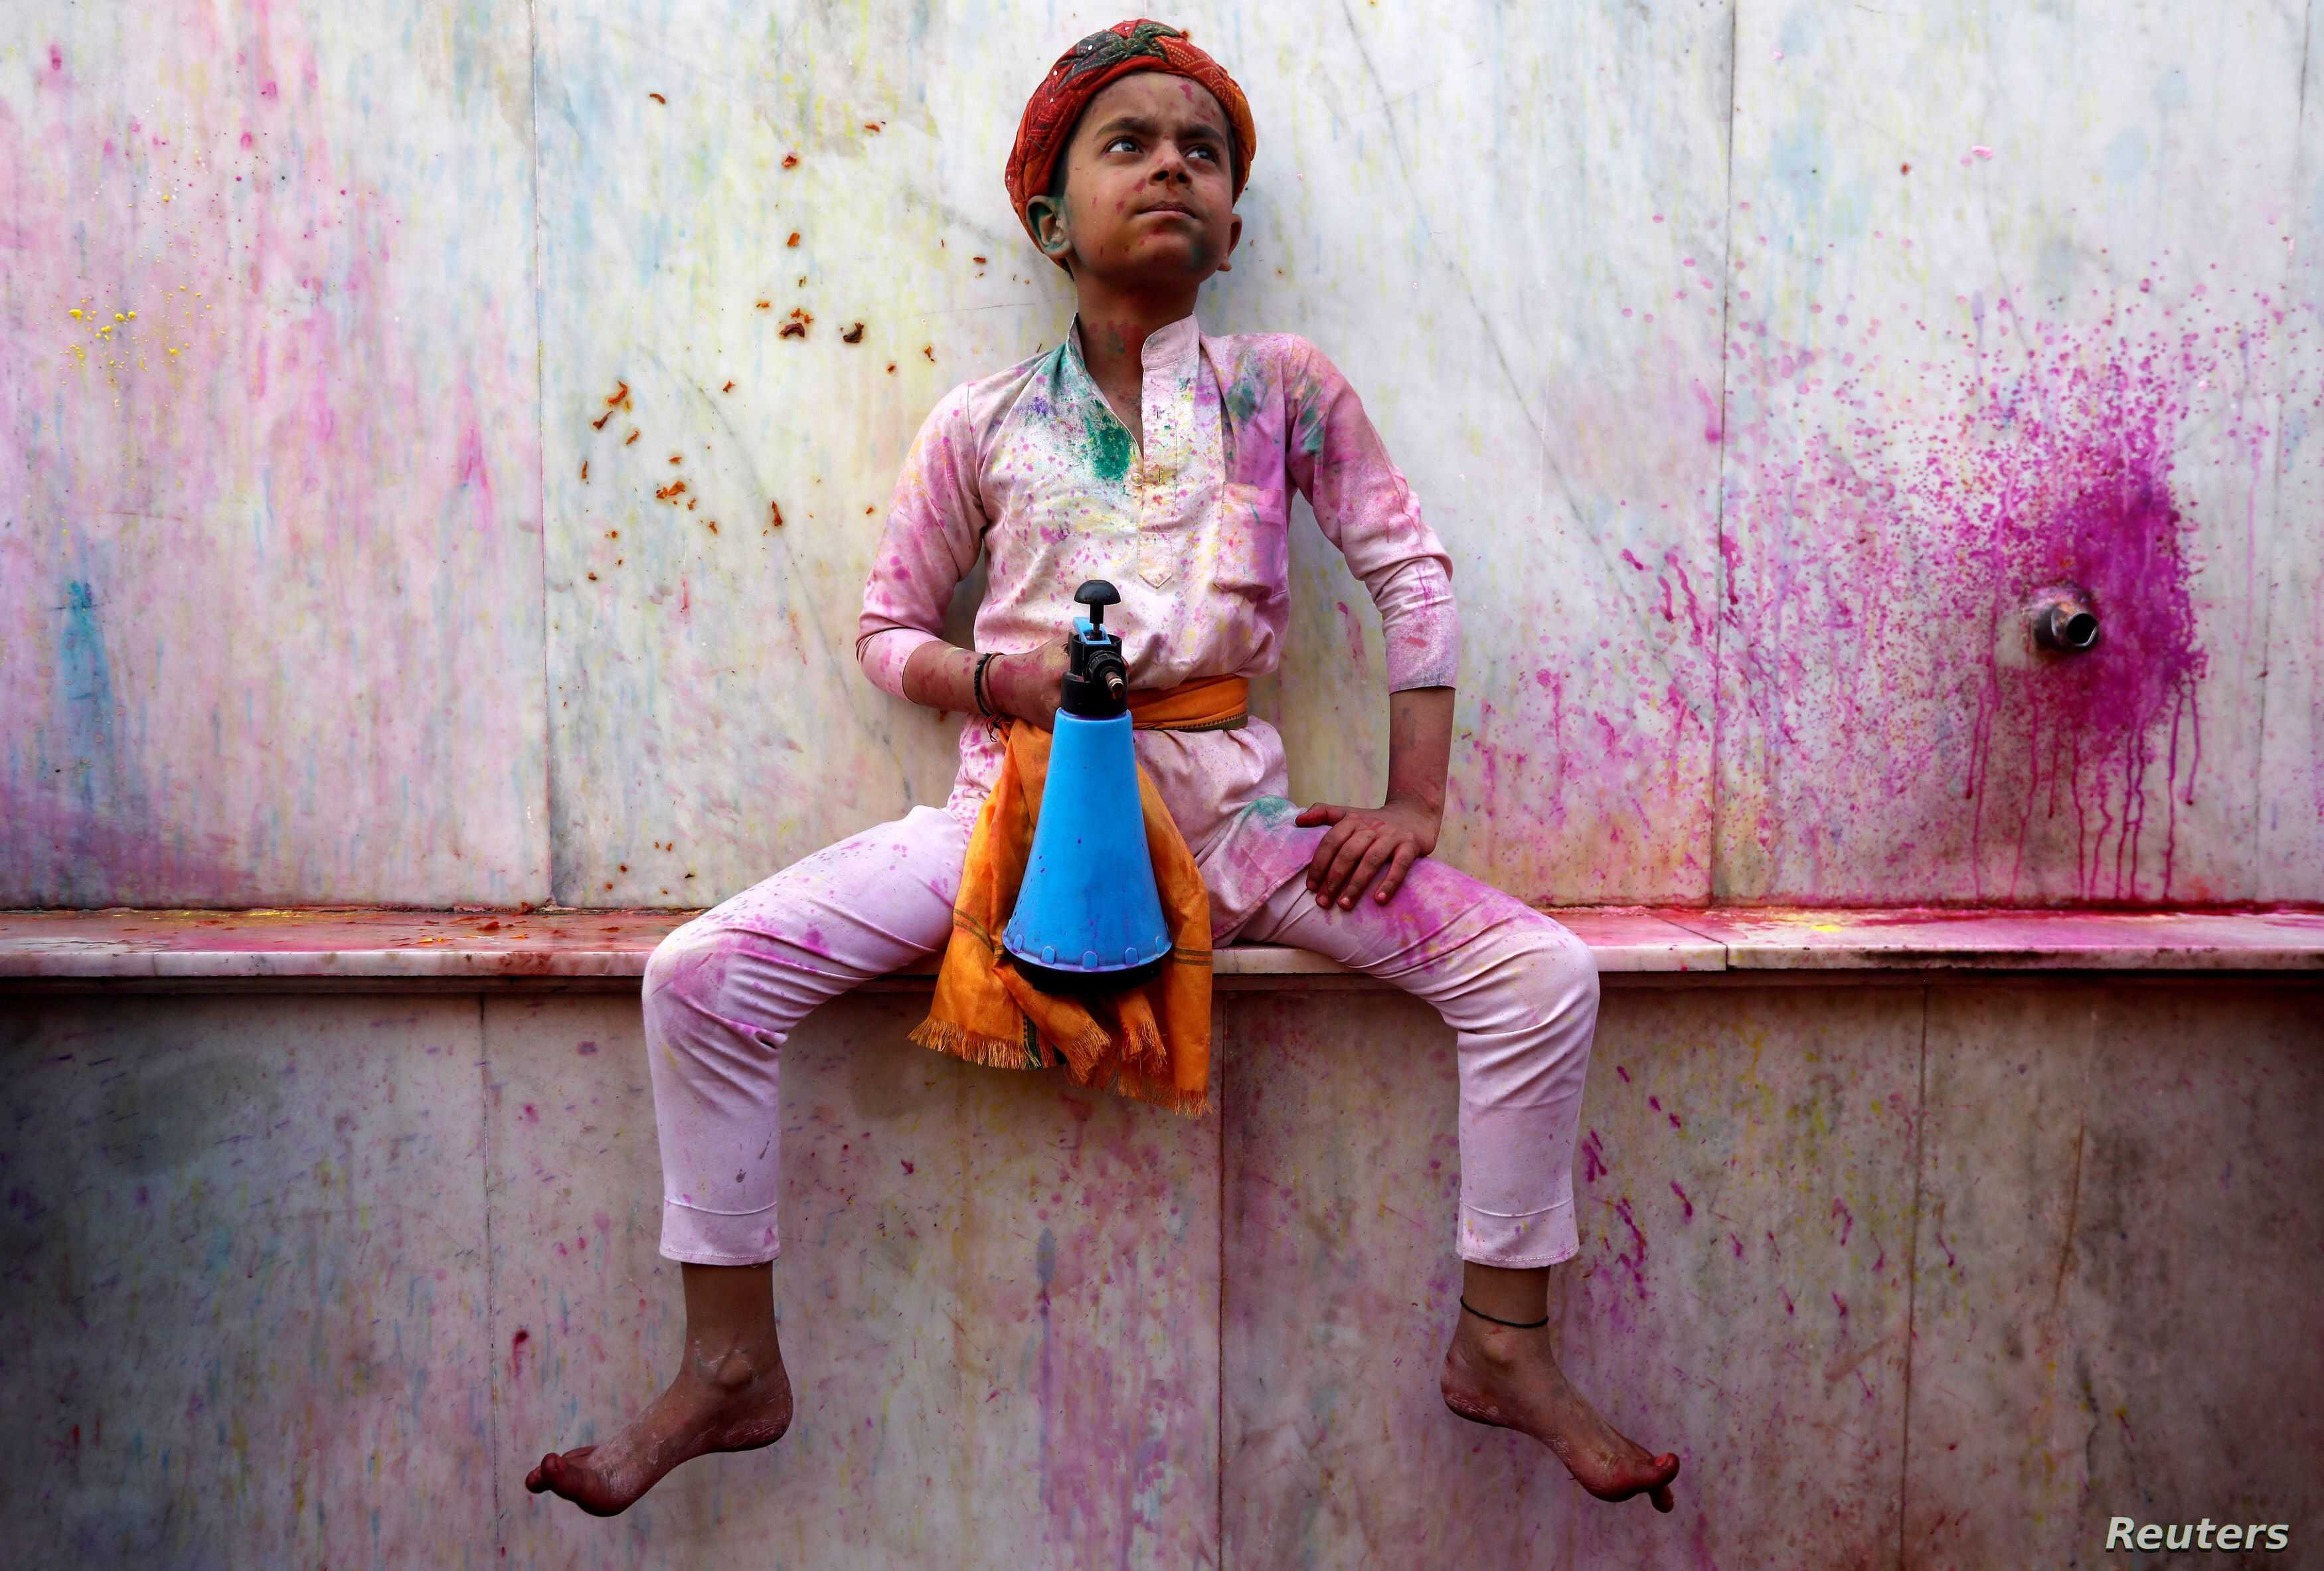 A boy holds a spray bottle as he takes part in the religious festival of Holi inside a temple in Nandgaon village, in the state of Uttar Pradesh, India.